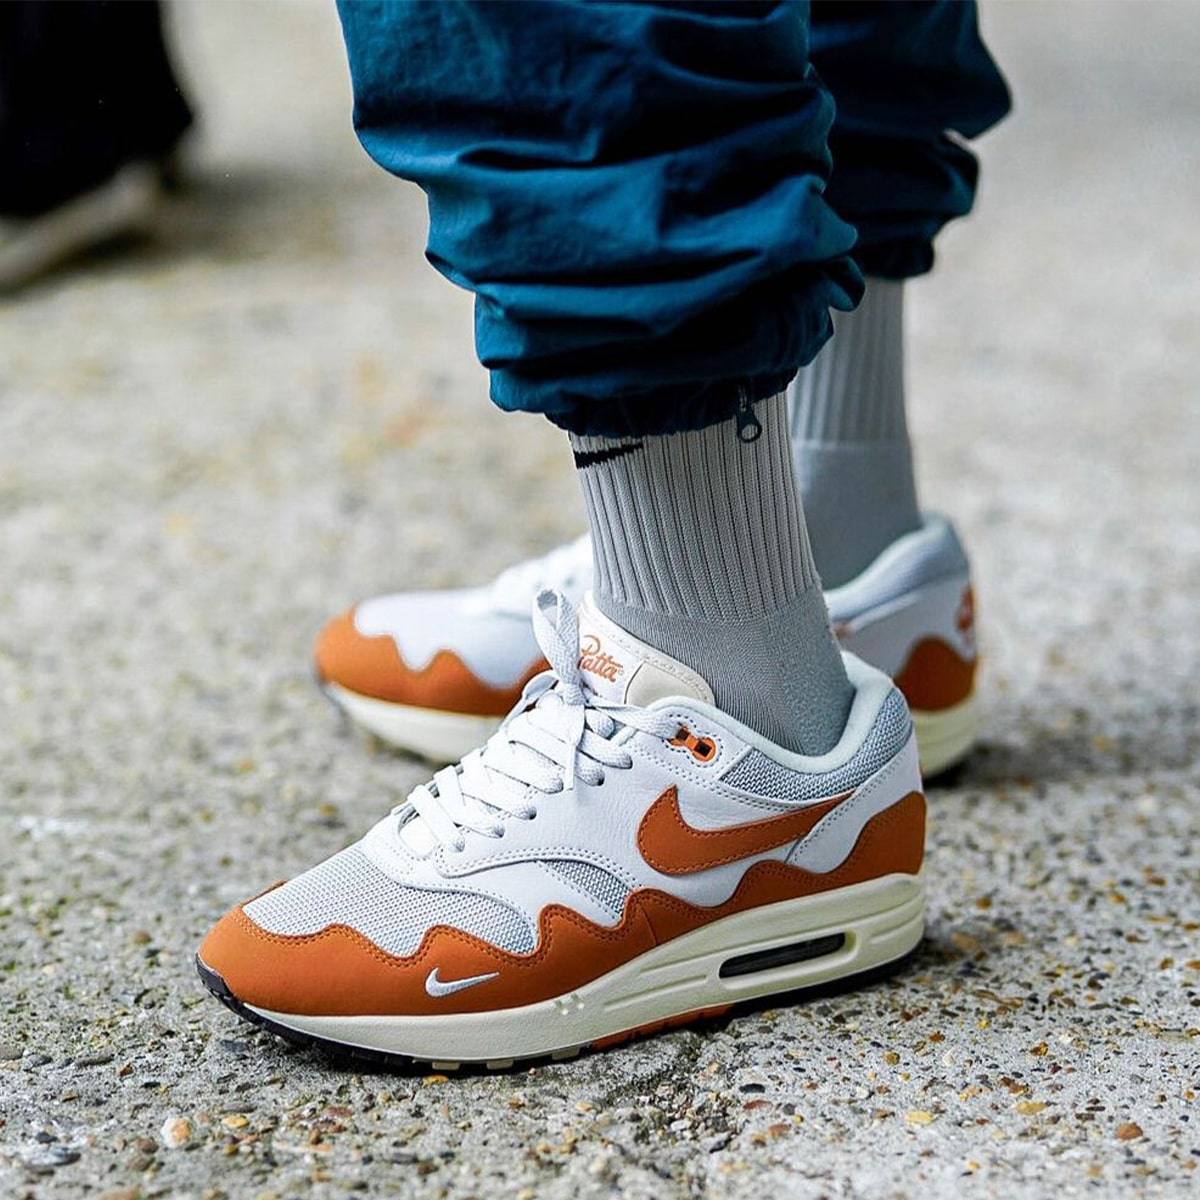 Better Looks at the Patta x Nike Air Max 1 | HOUSE OF HEAT